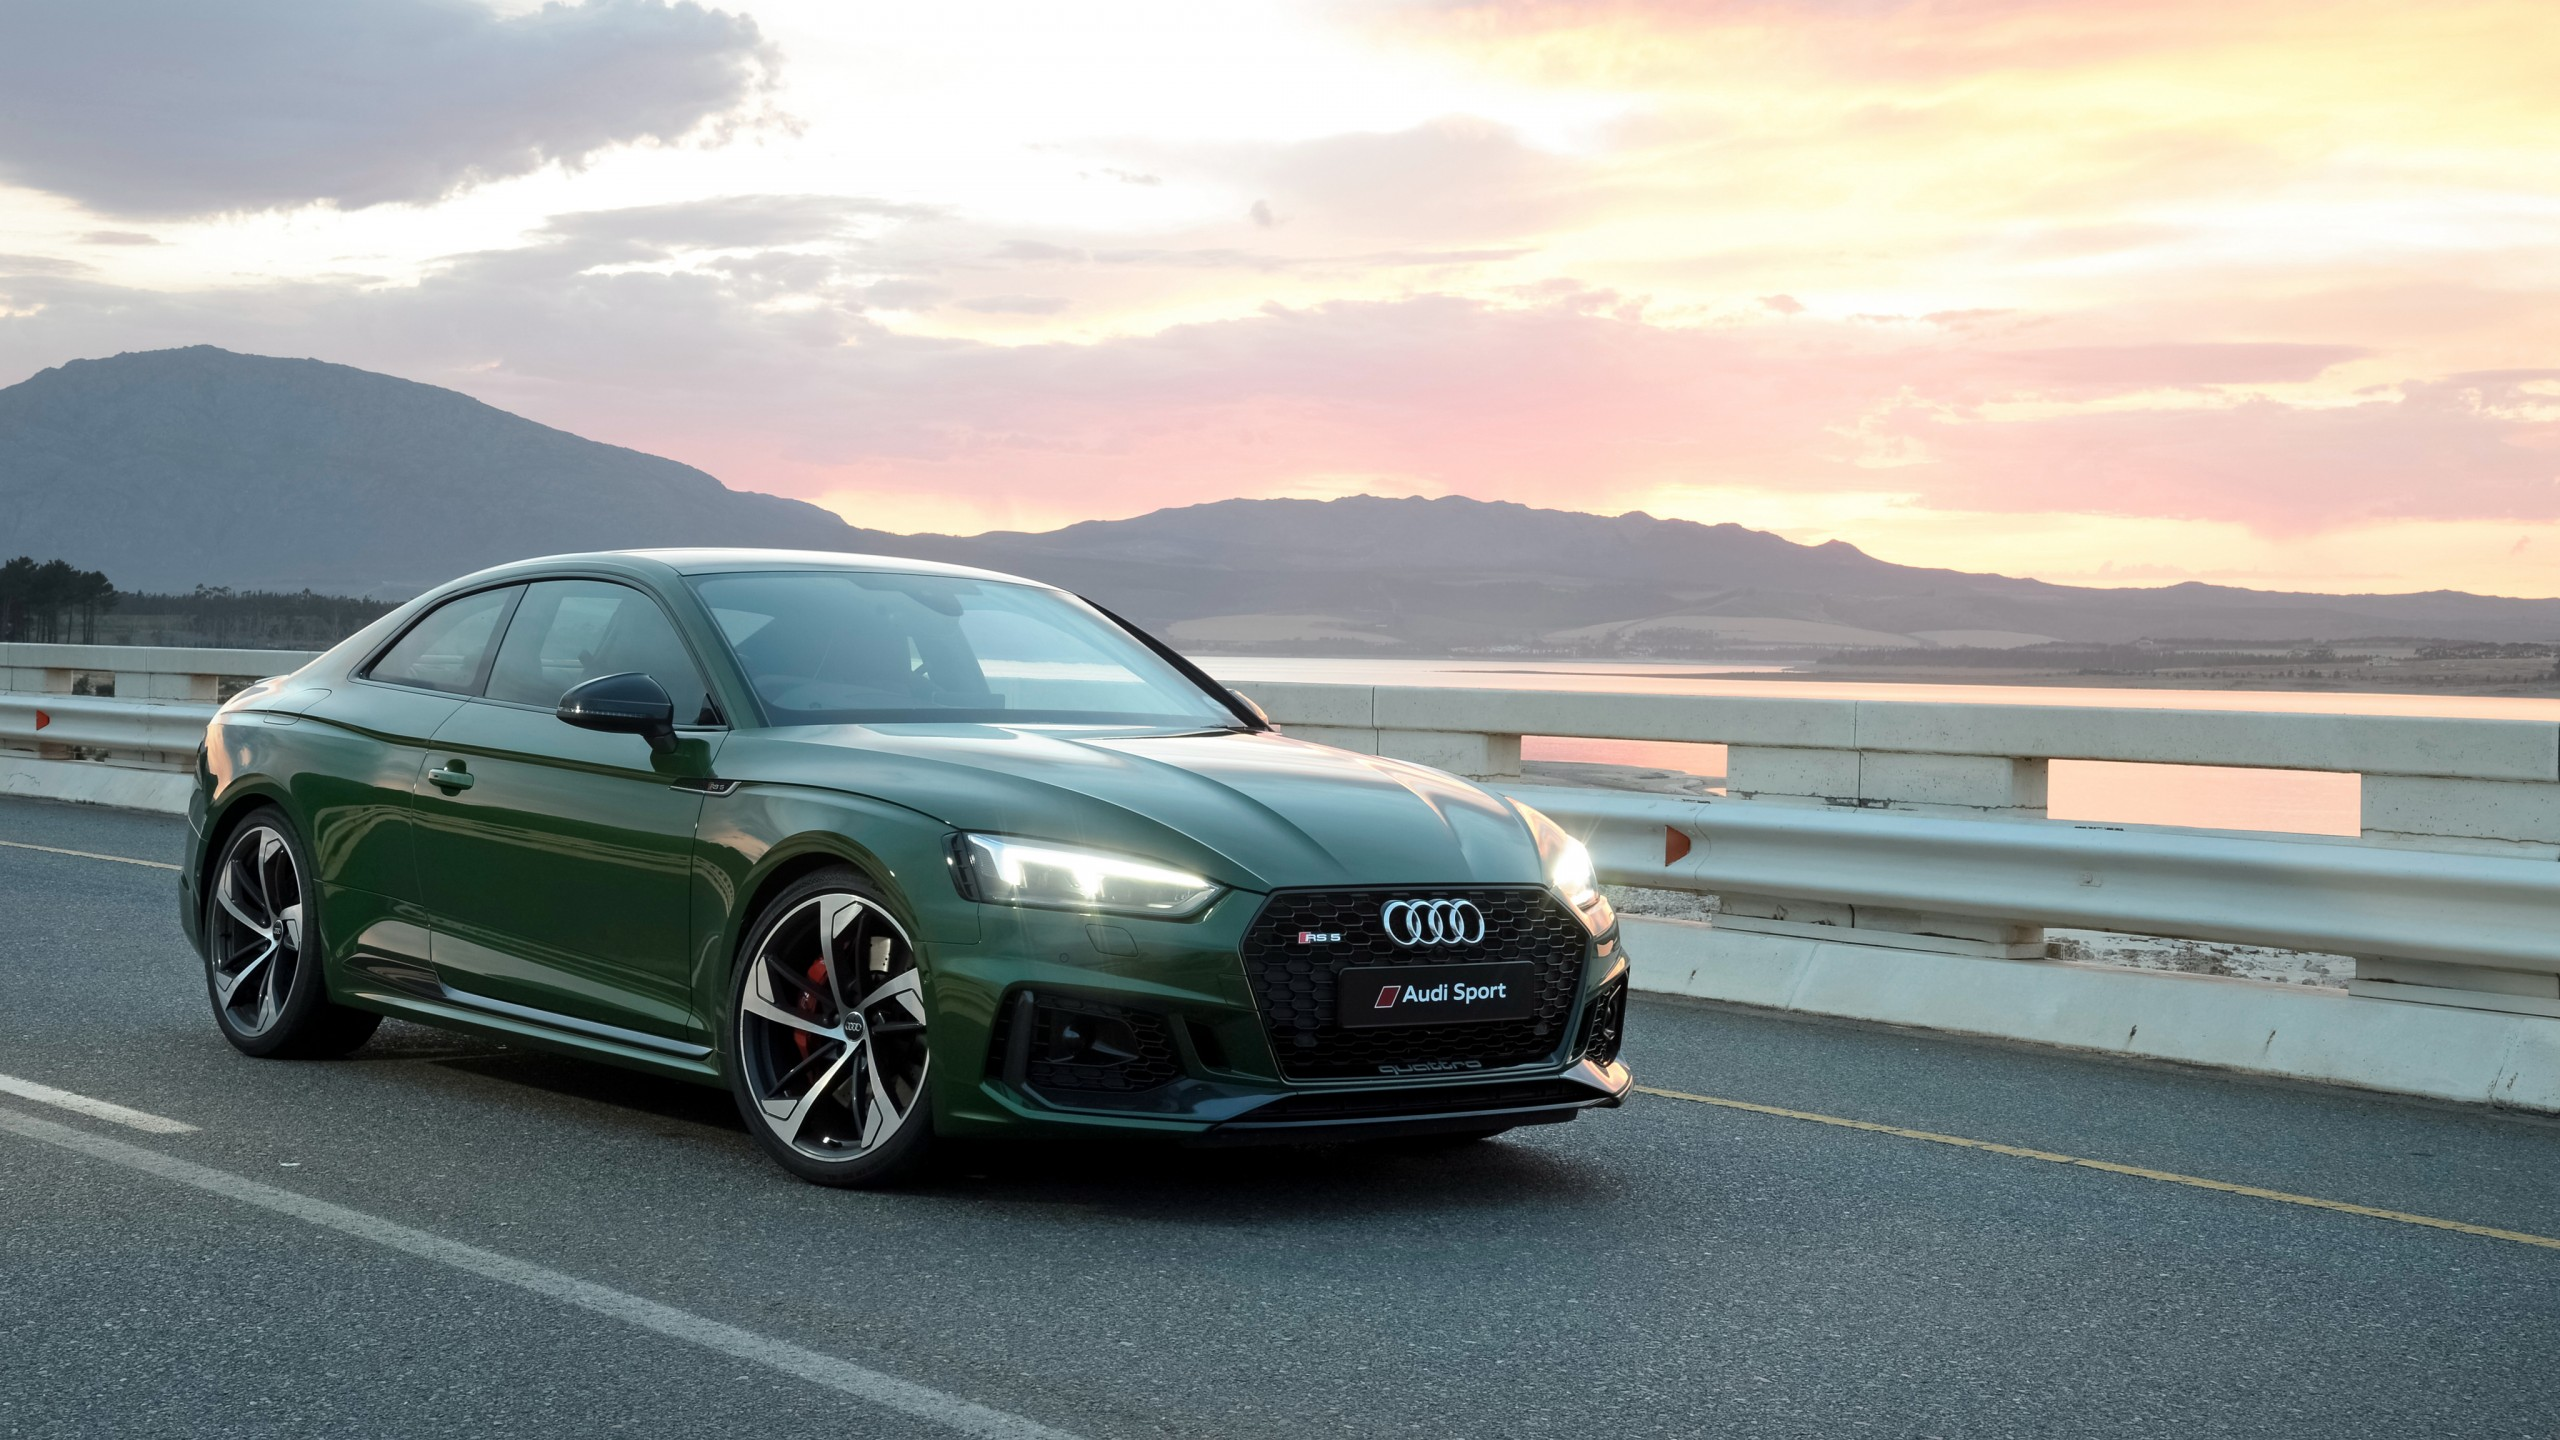 2018 audi rs5 coupe 4k wallpaper hd car wallpapers id 9070 - Car wallpapers for galaxy s5 ...